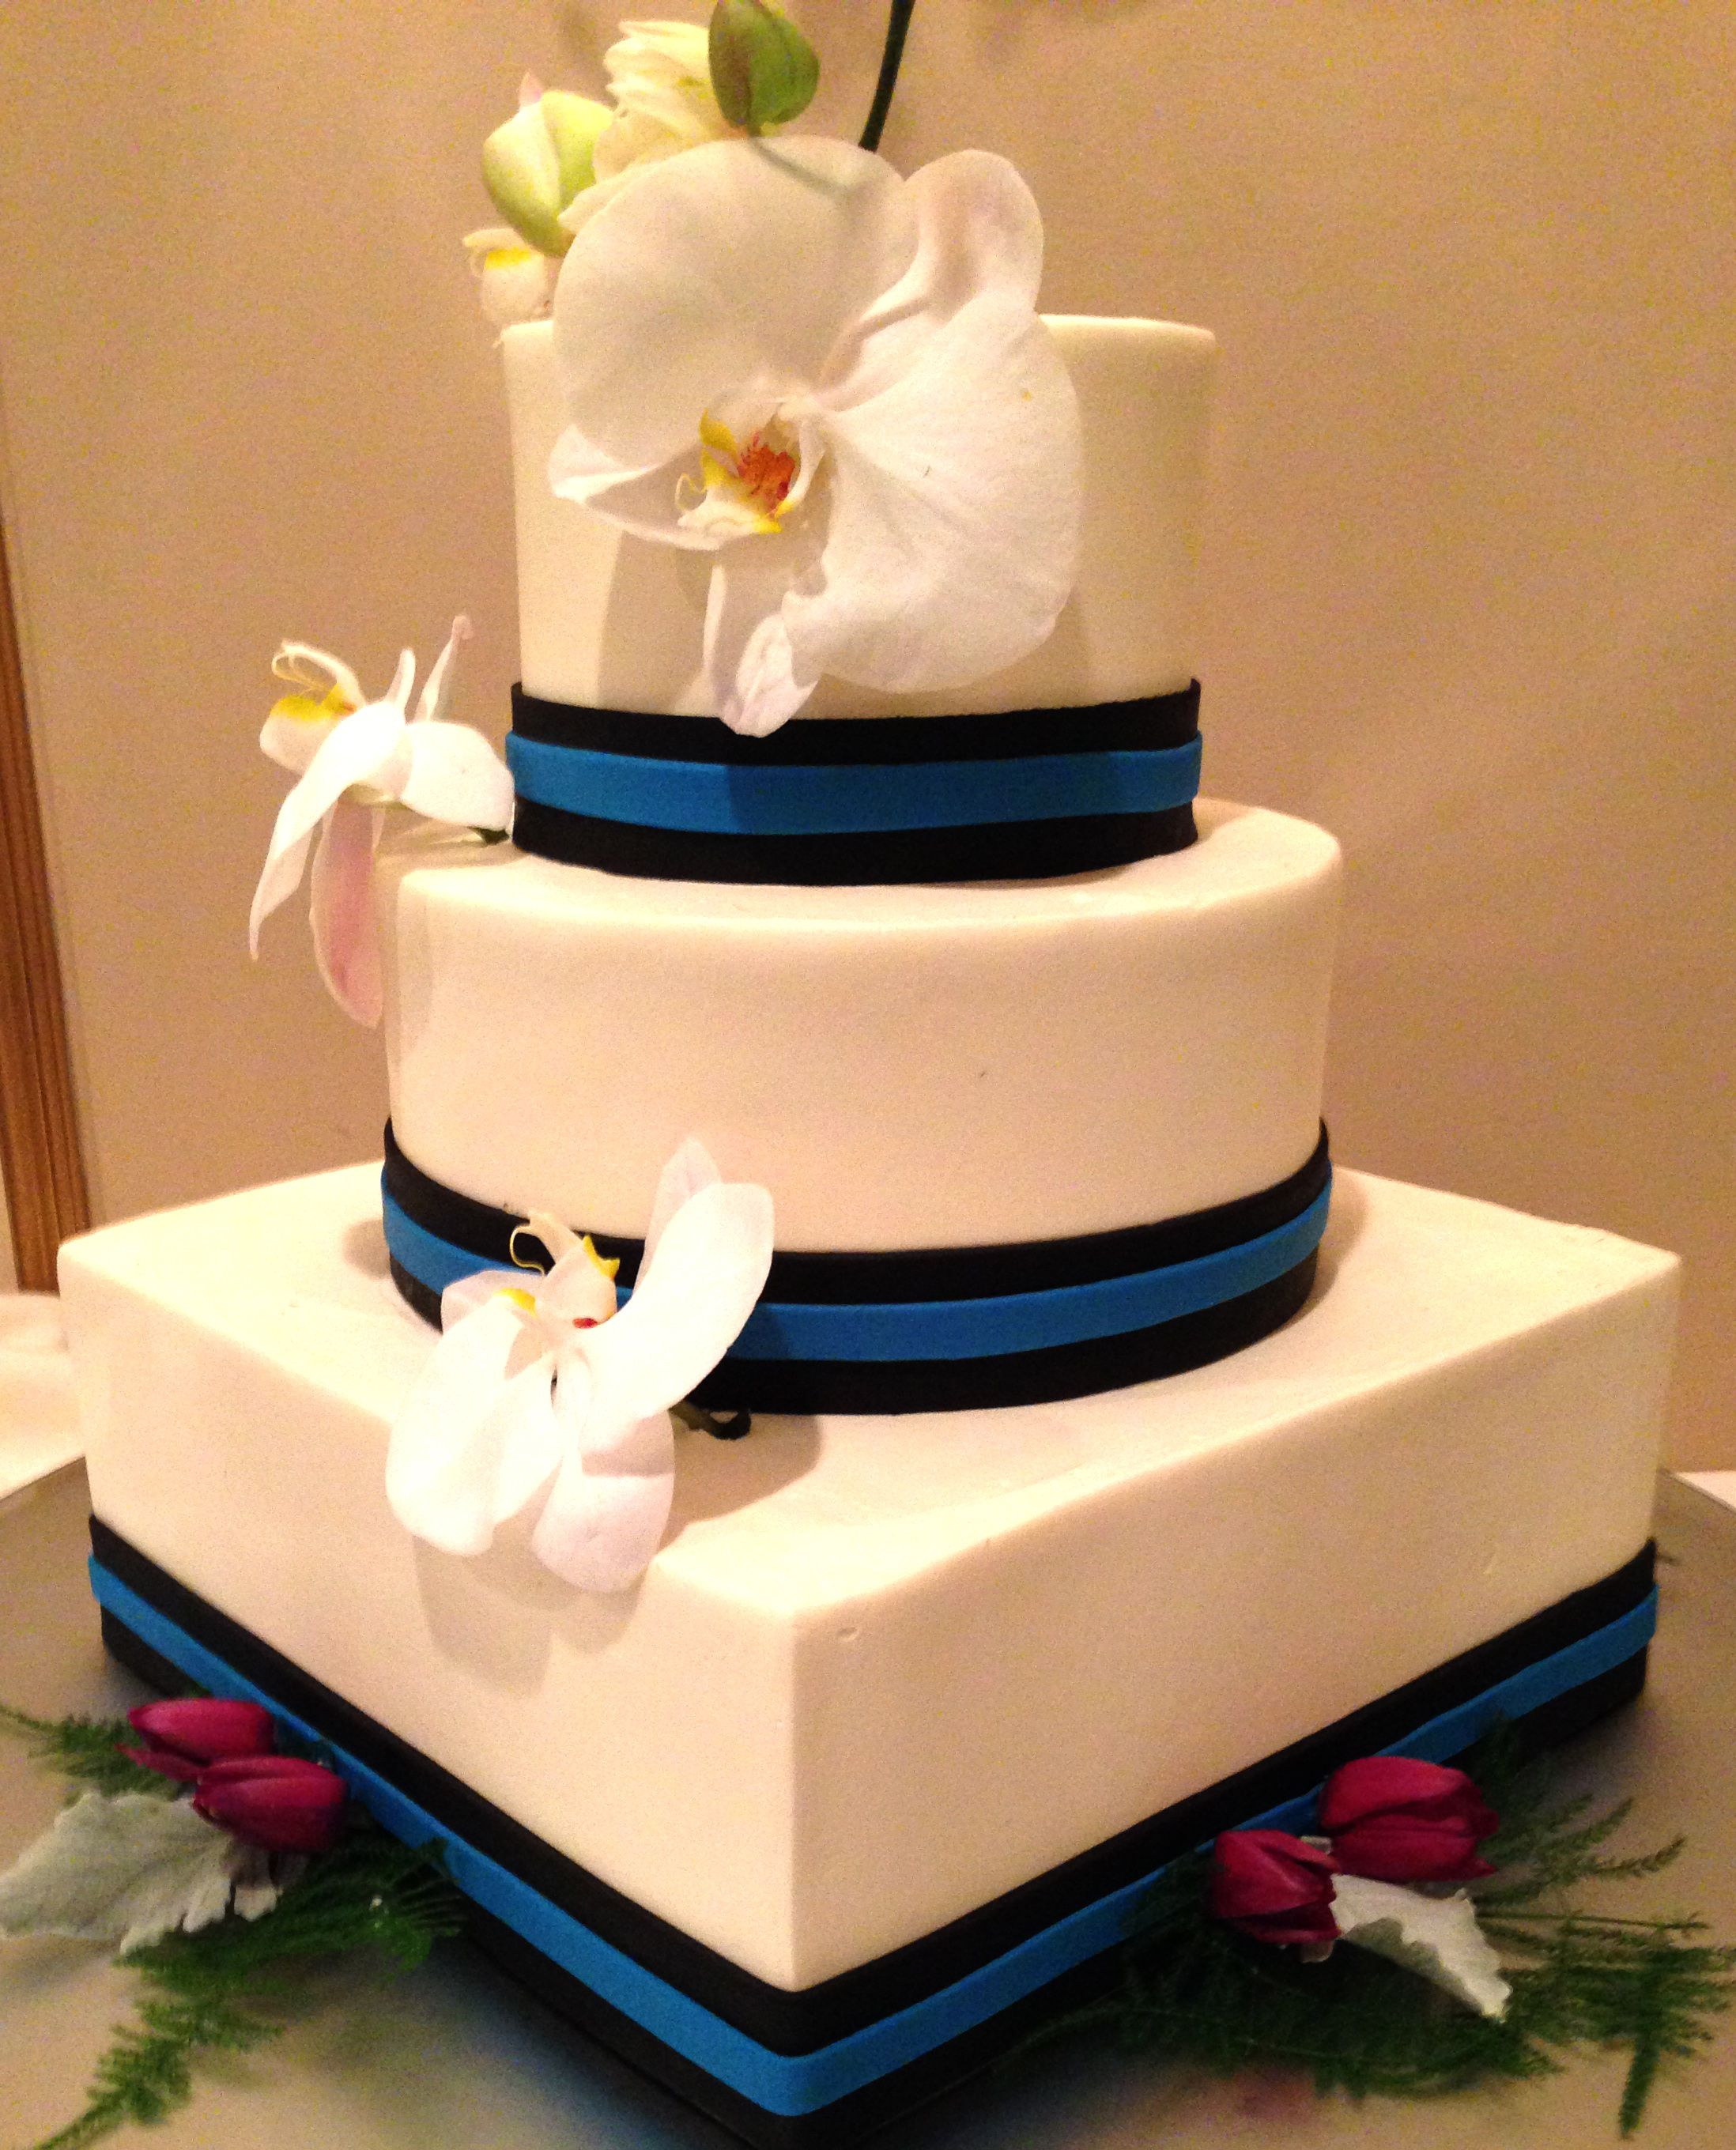 3 Tier Wedding Cake | Have your cake and eat it too | Pinterest ...